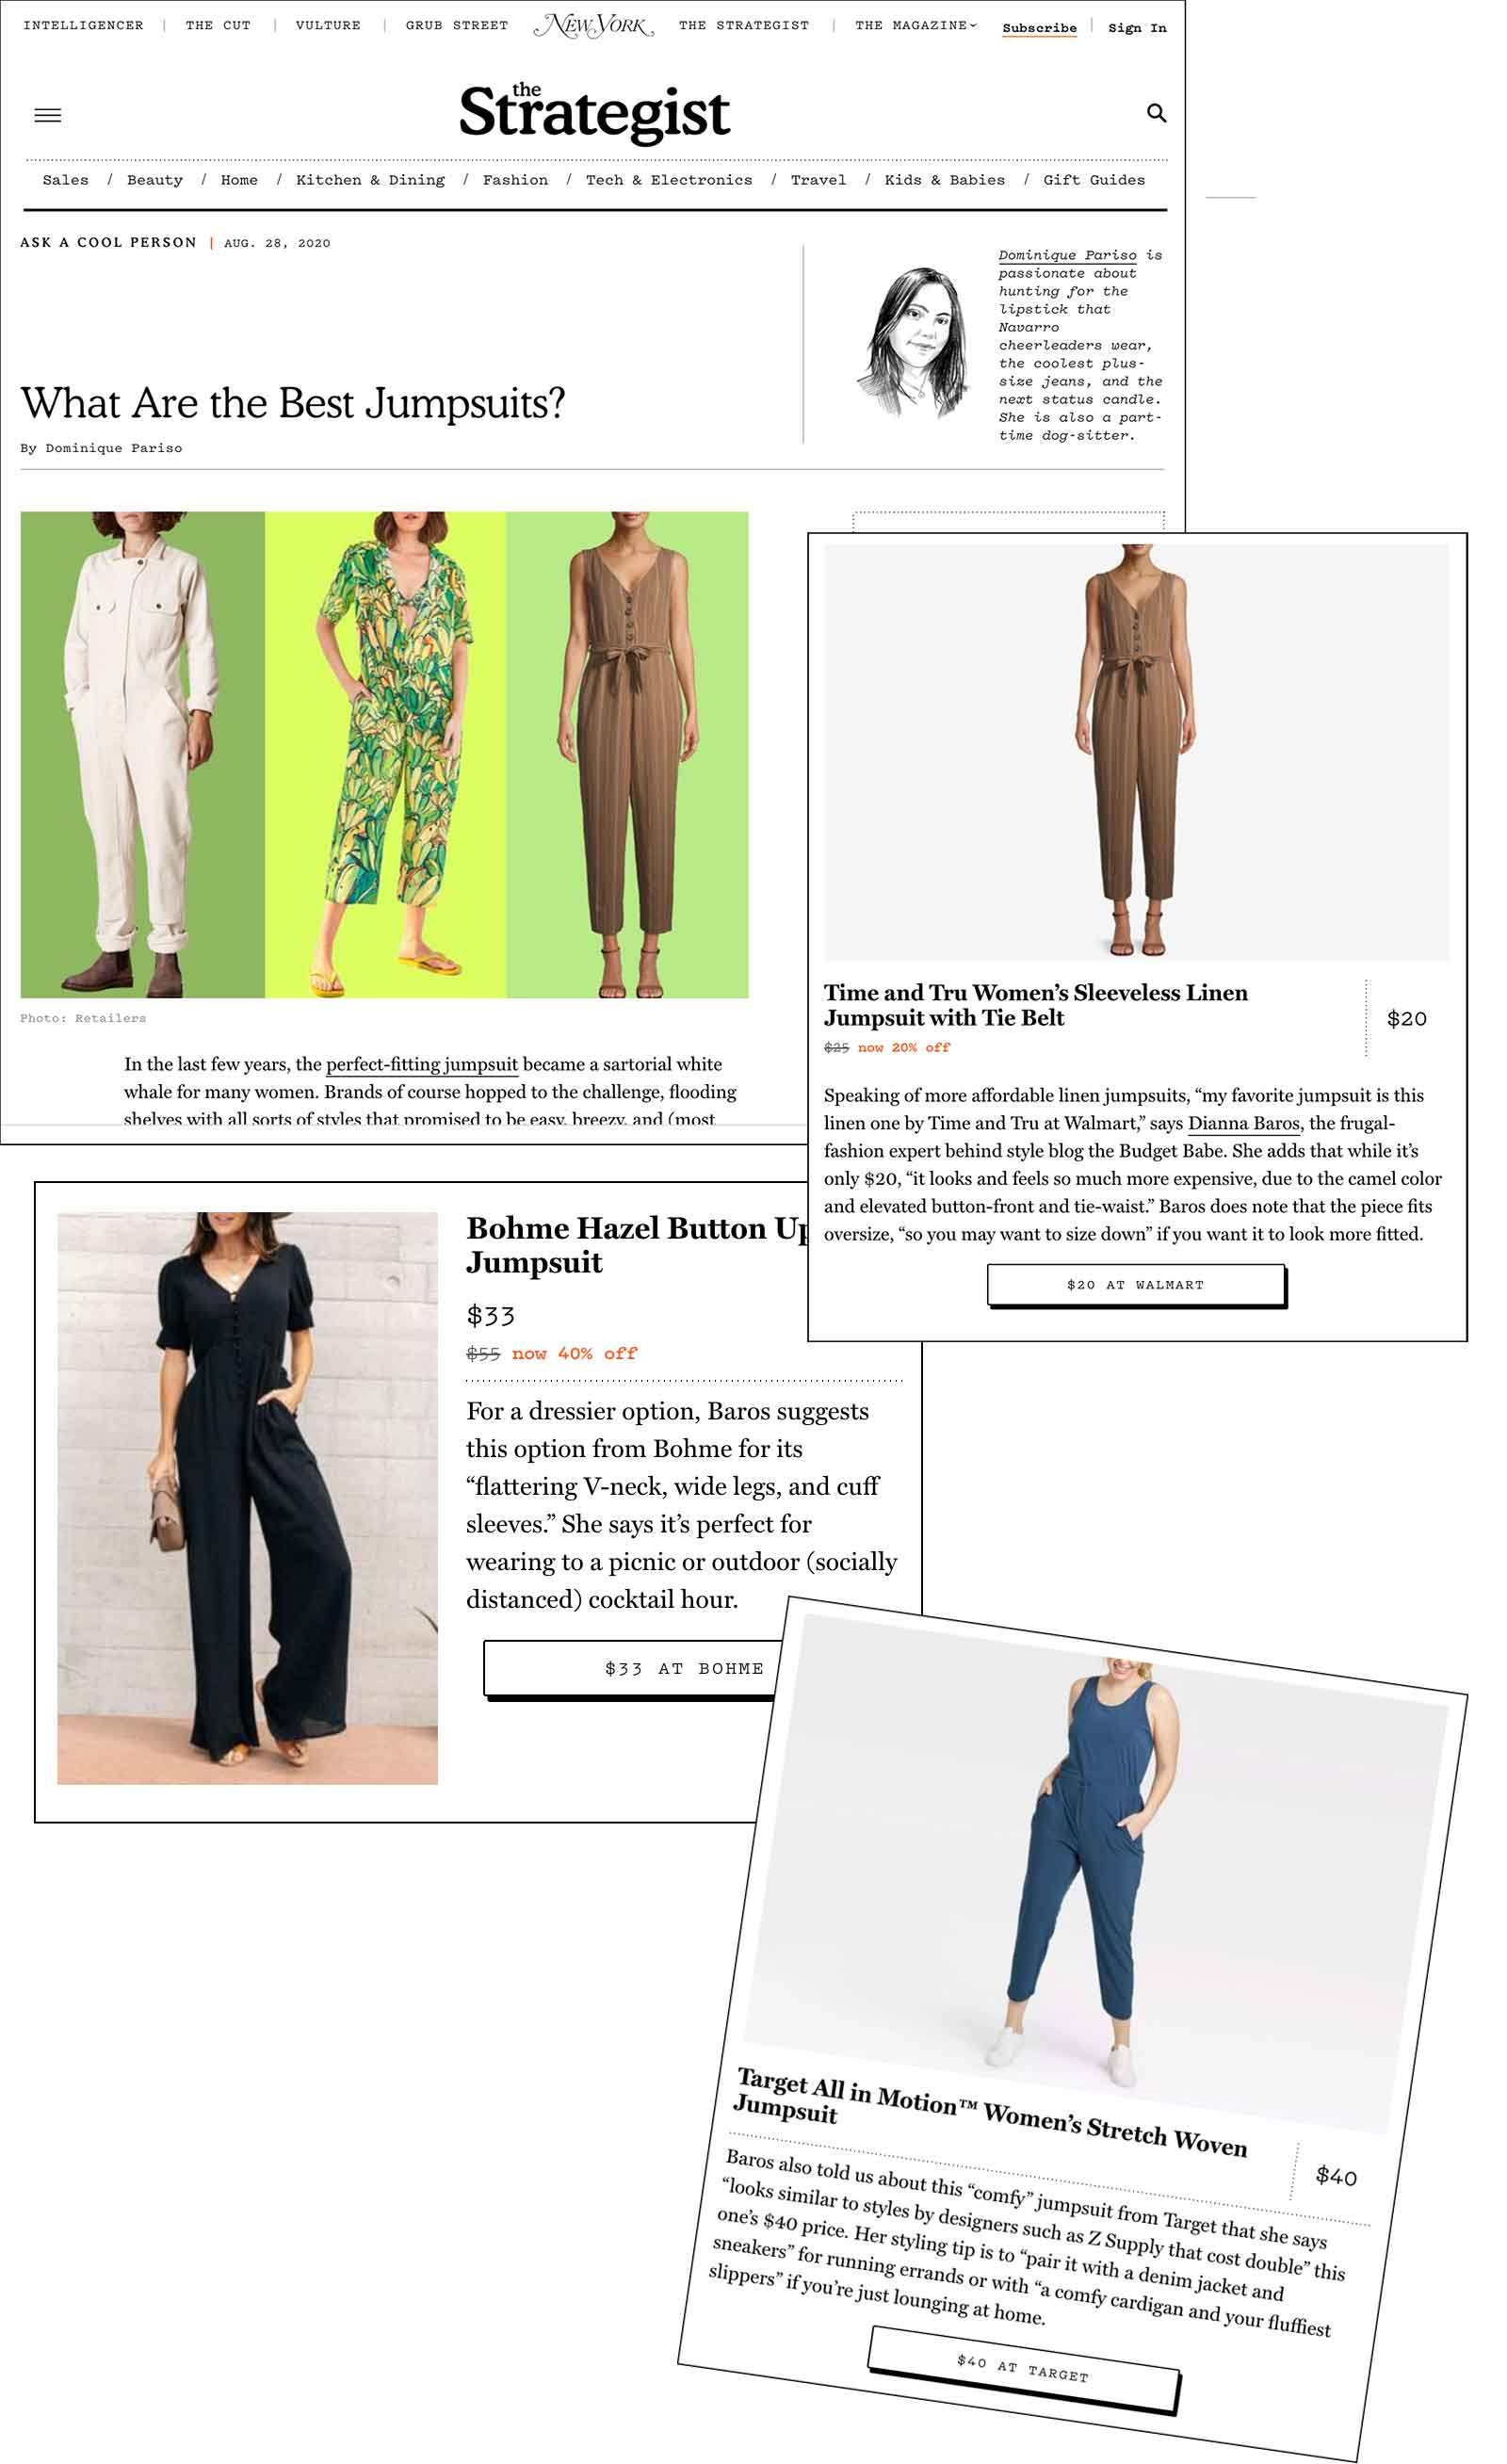 The Budget Babe, Dianna Baros, talks about the best jumpsuits on a budget with The Strategist by New York Magazine.